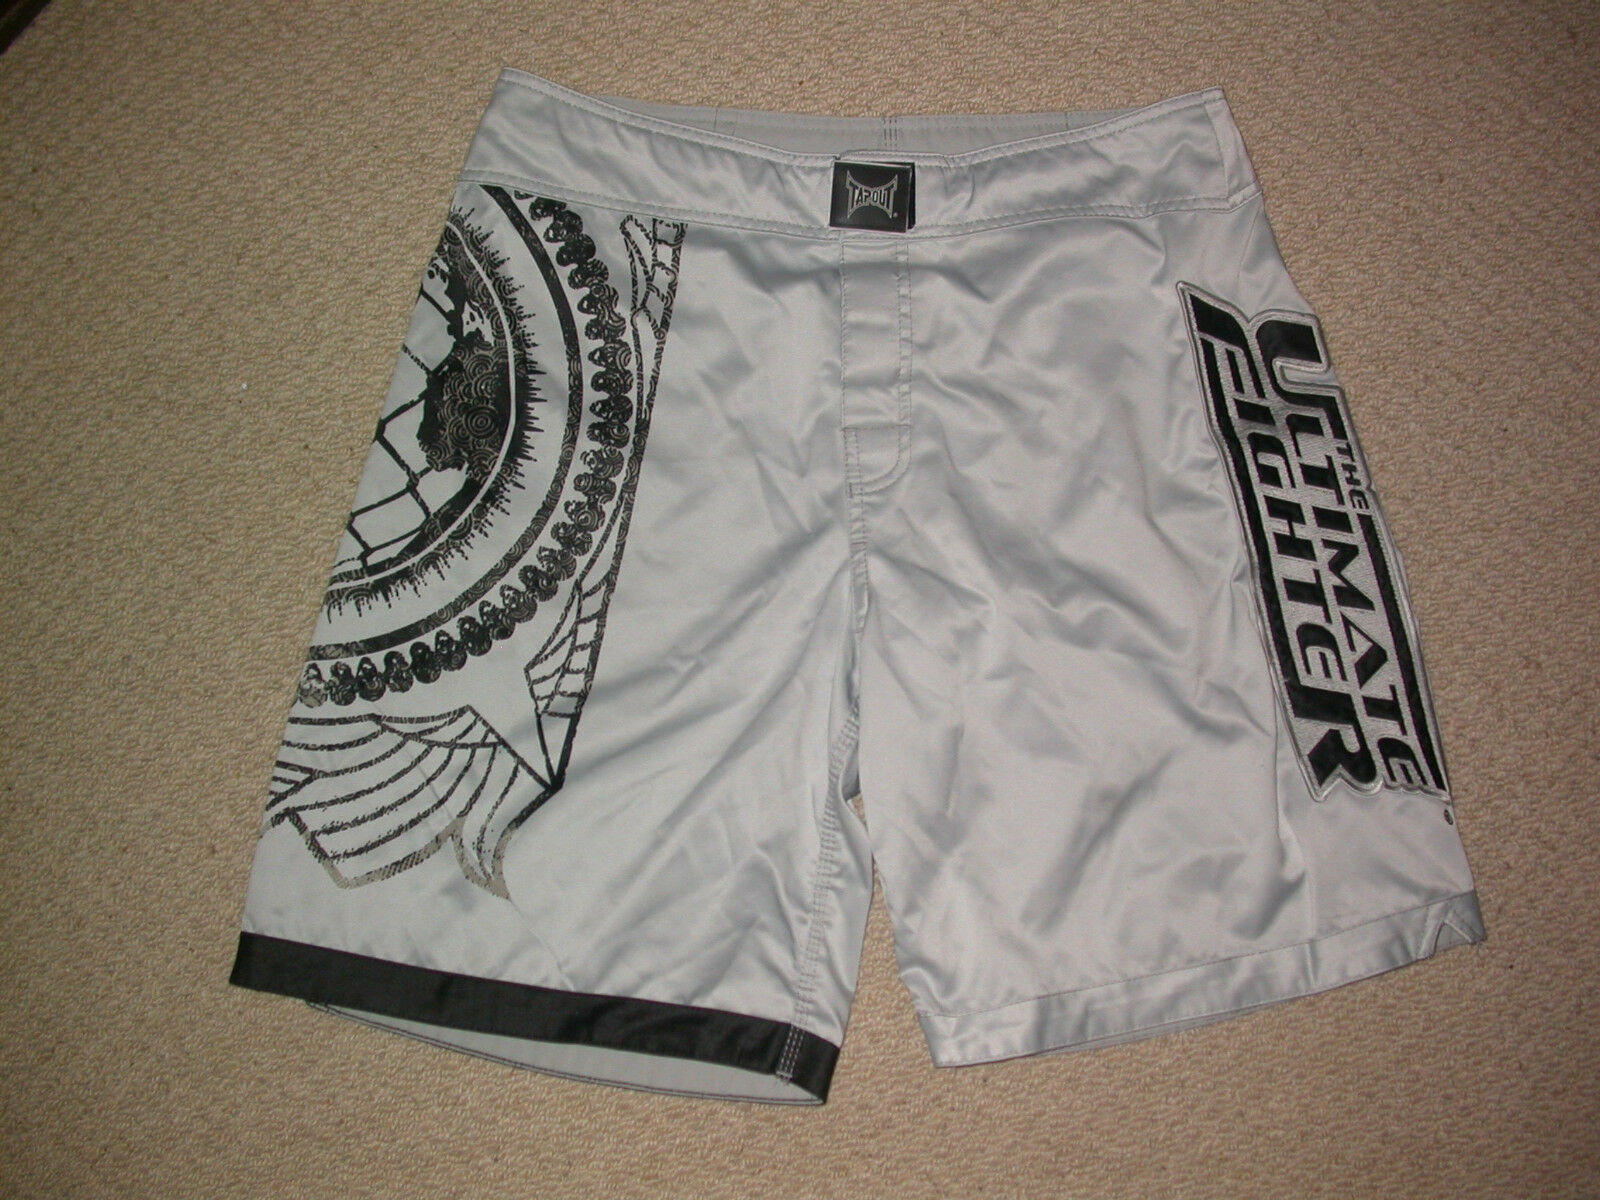 UFC TAPOUT ULTIMATE FIGHTER TEAM RAMPAGE SHORTS 34W LARGE MMA KSW BJJ BOXING GYM